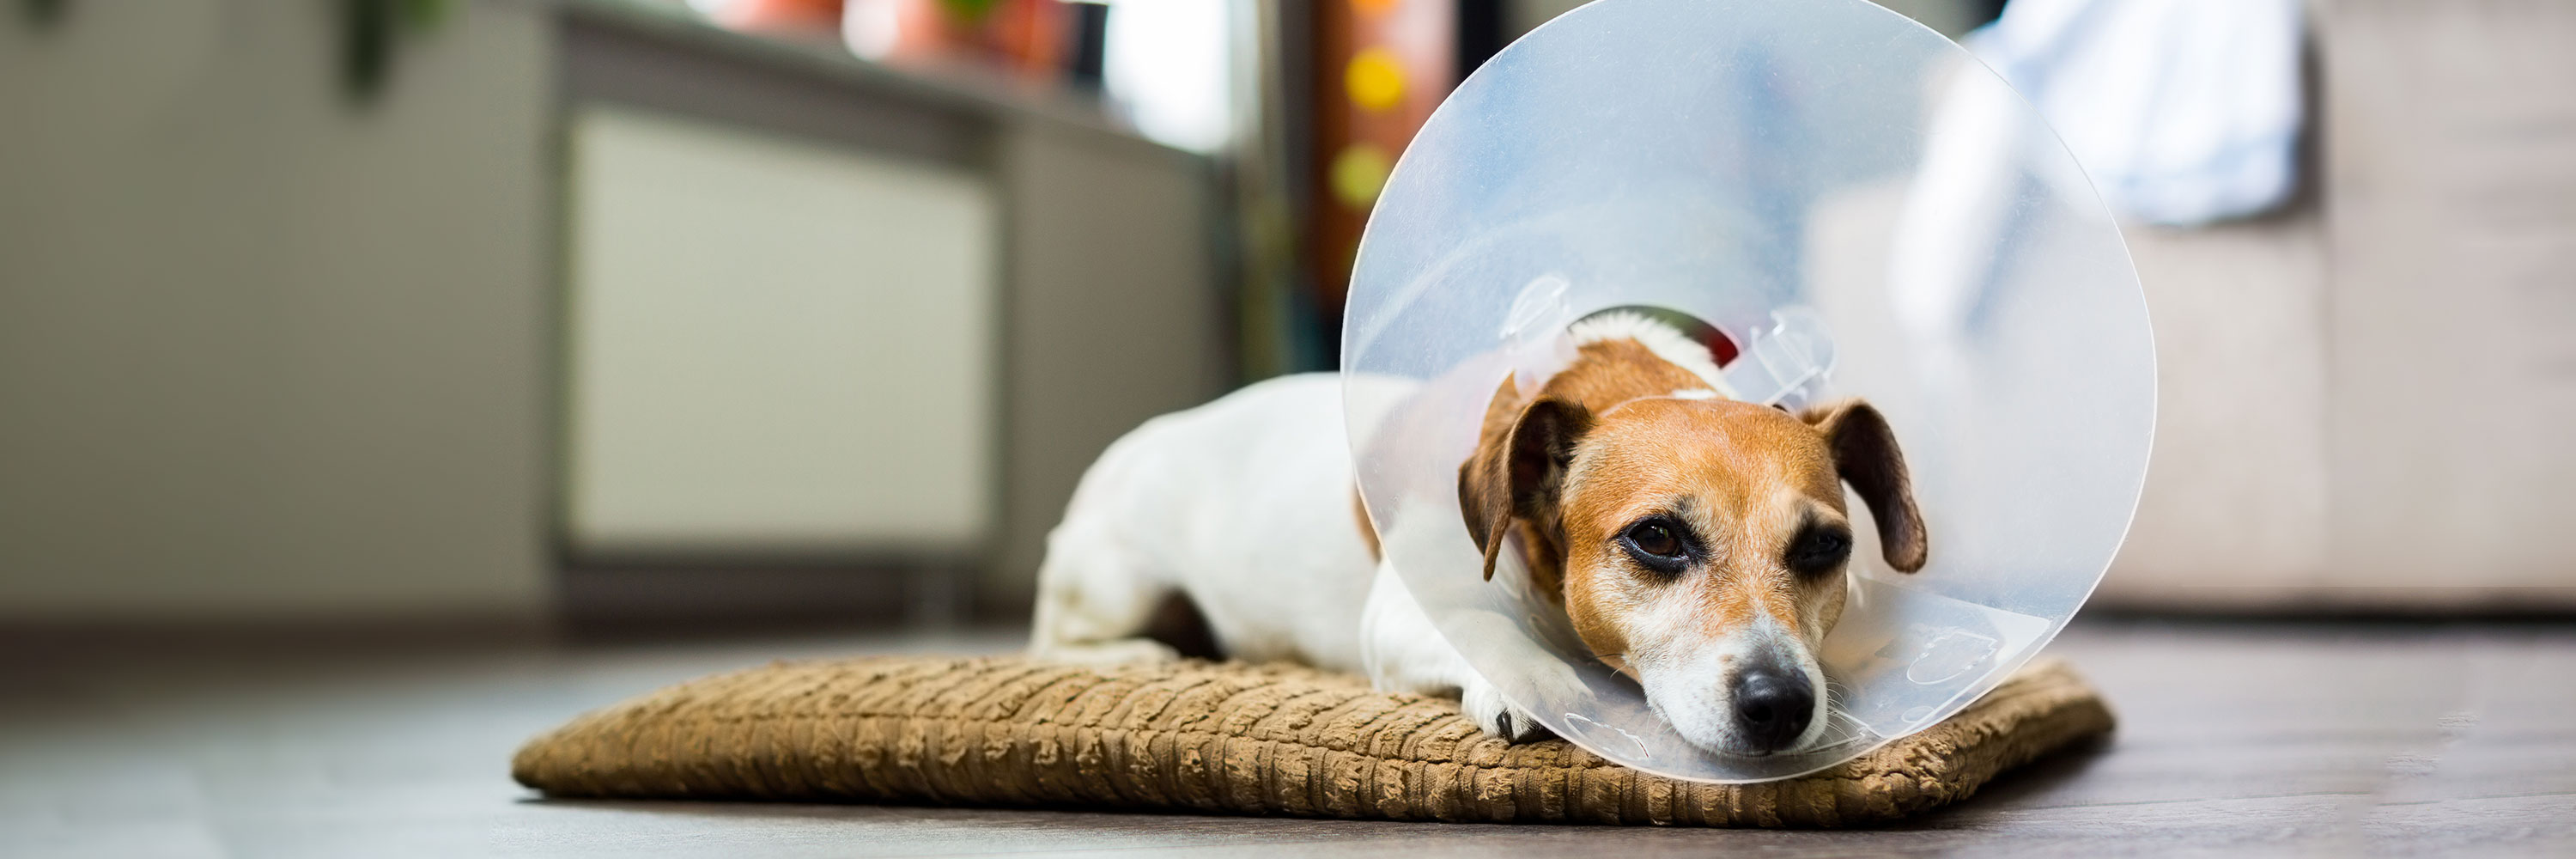 Vomiting and Diarrhea Can Quickly Turn Into a Veterinary Emergency